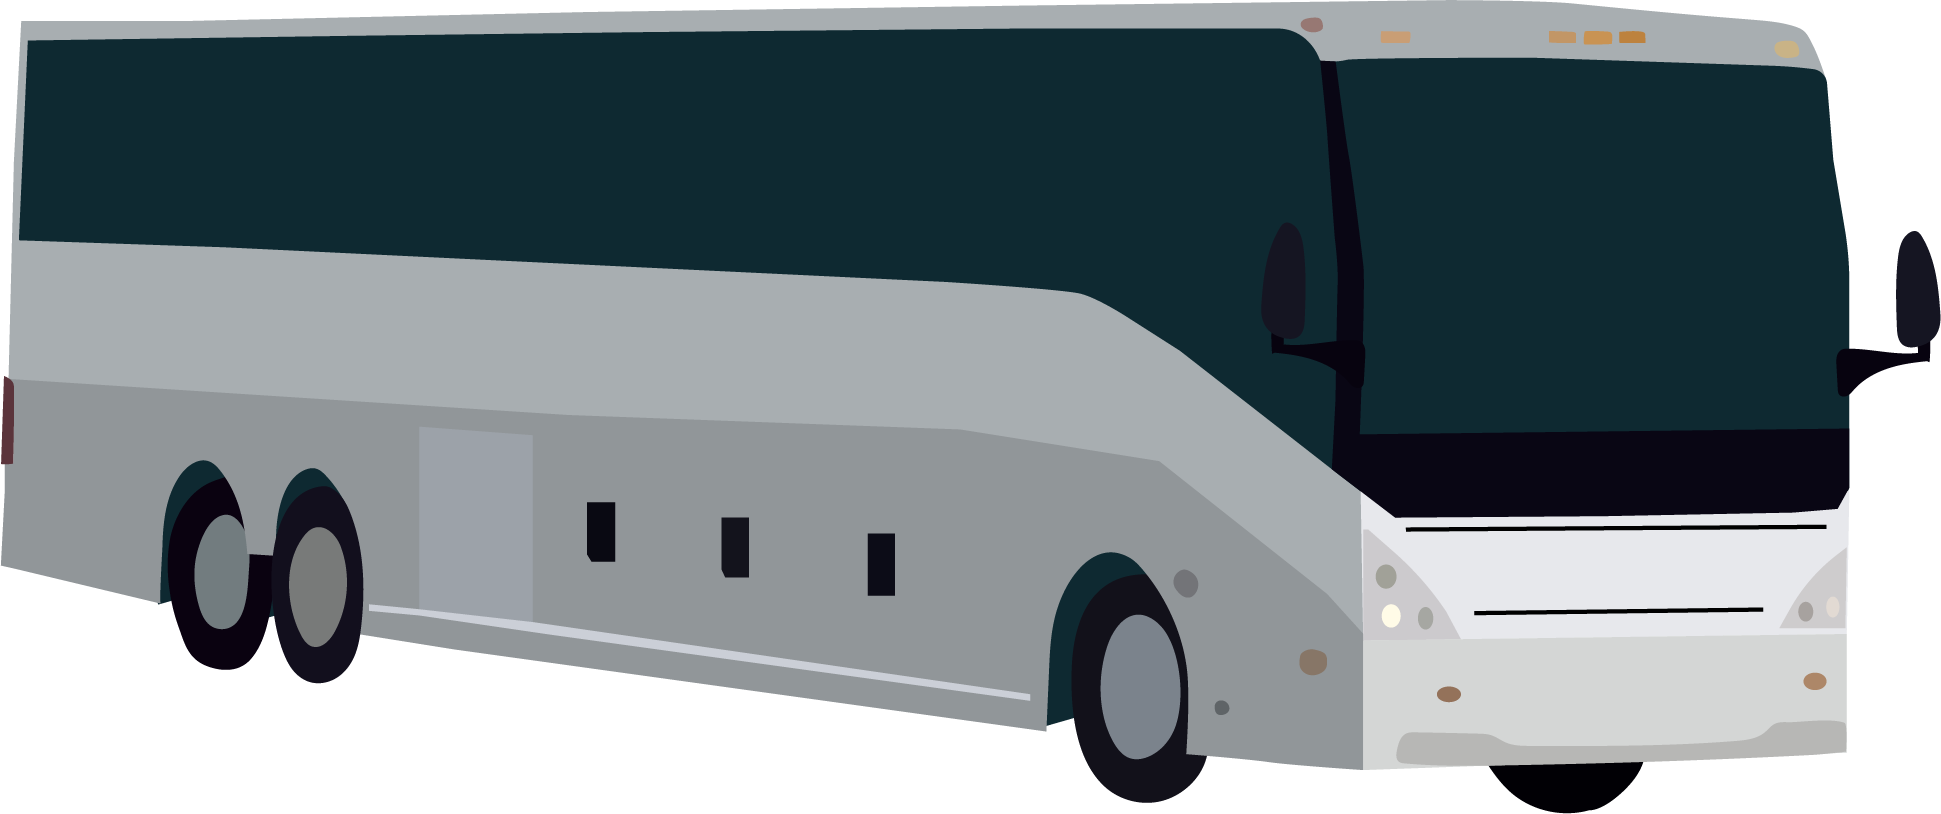 Providing employees a company shuttle and the commuter benefits